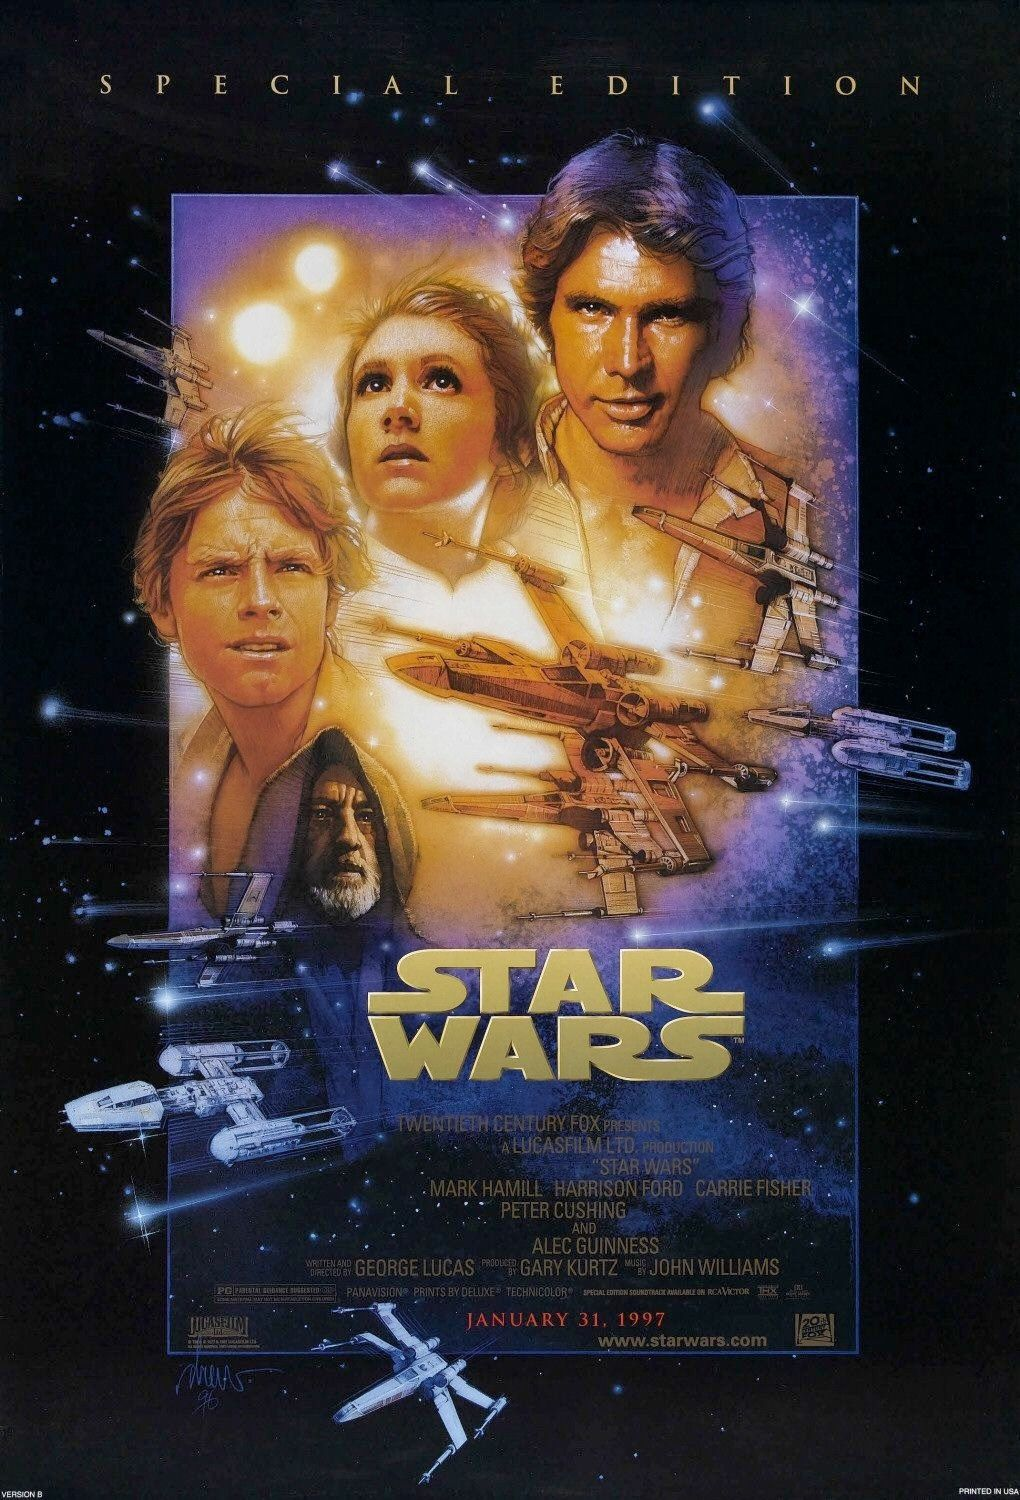 Star Wars Episode Iv A New Hope Star Wars Movies Posters Star Wars Episodes Star Wars Episode Iv